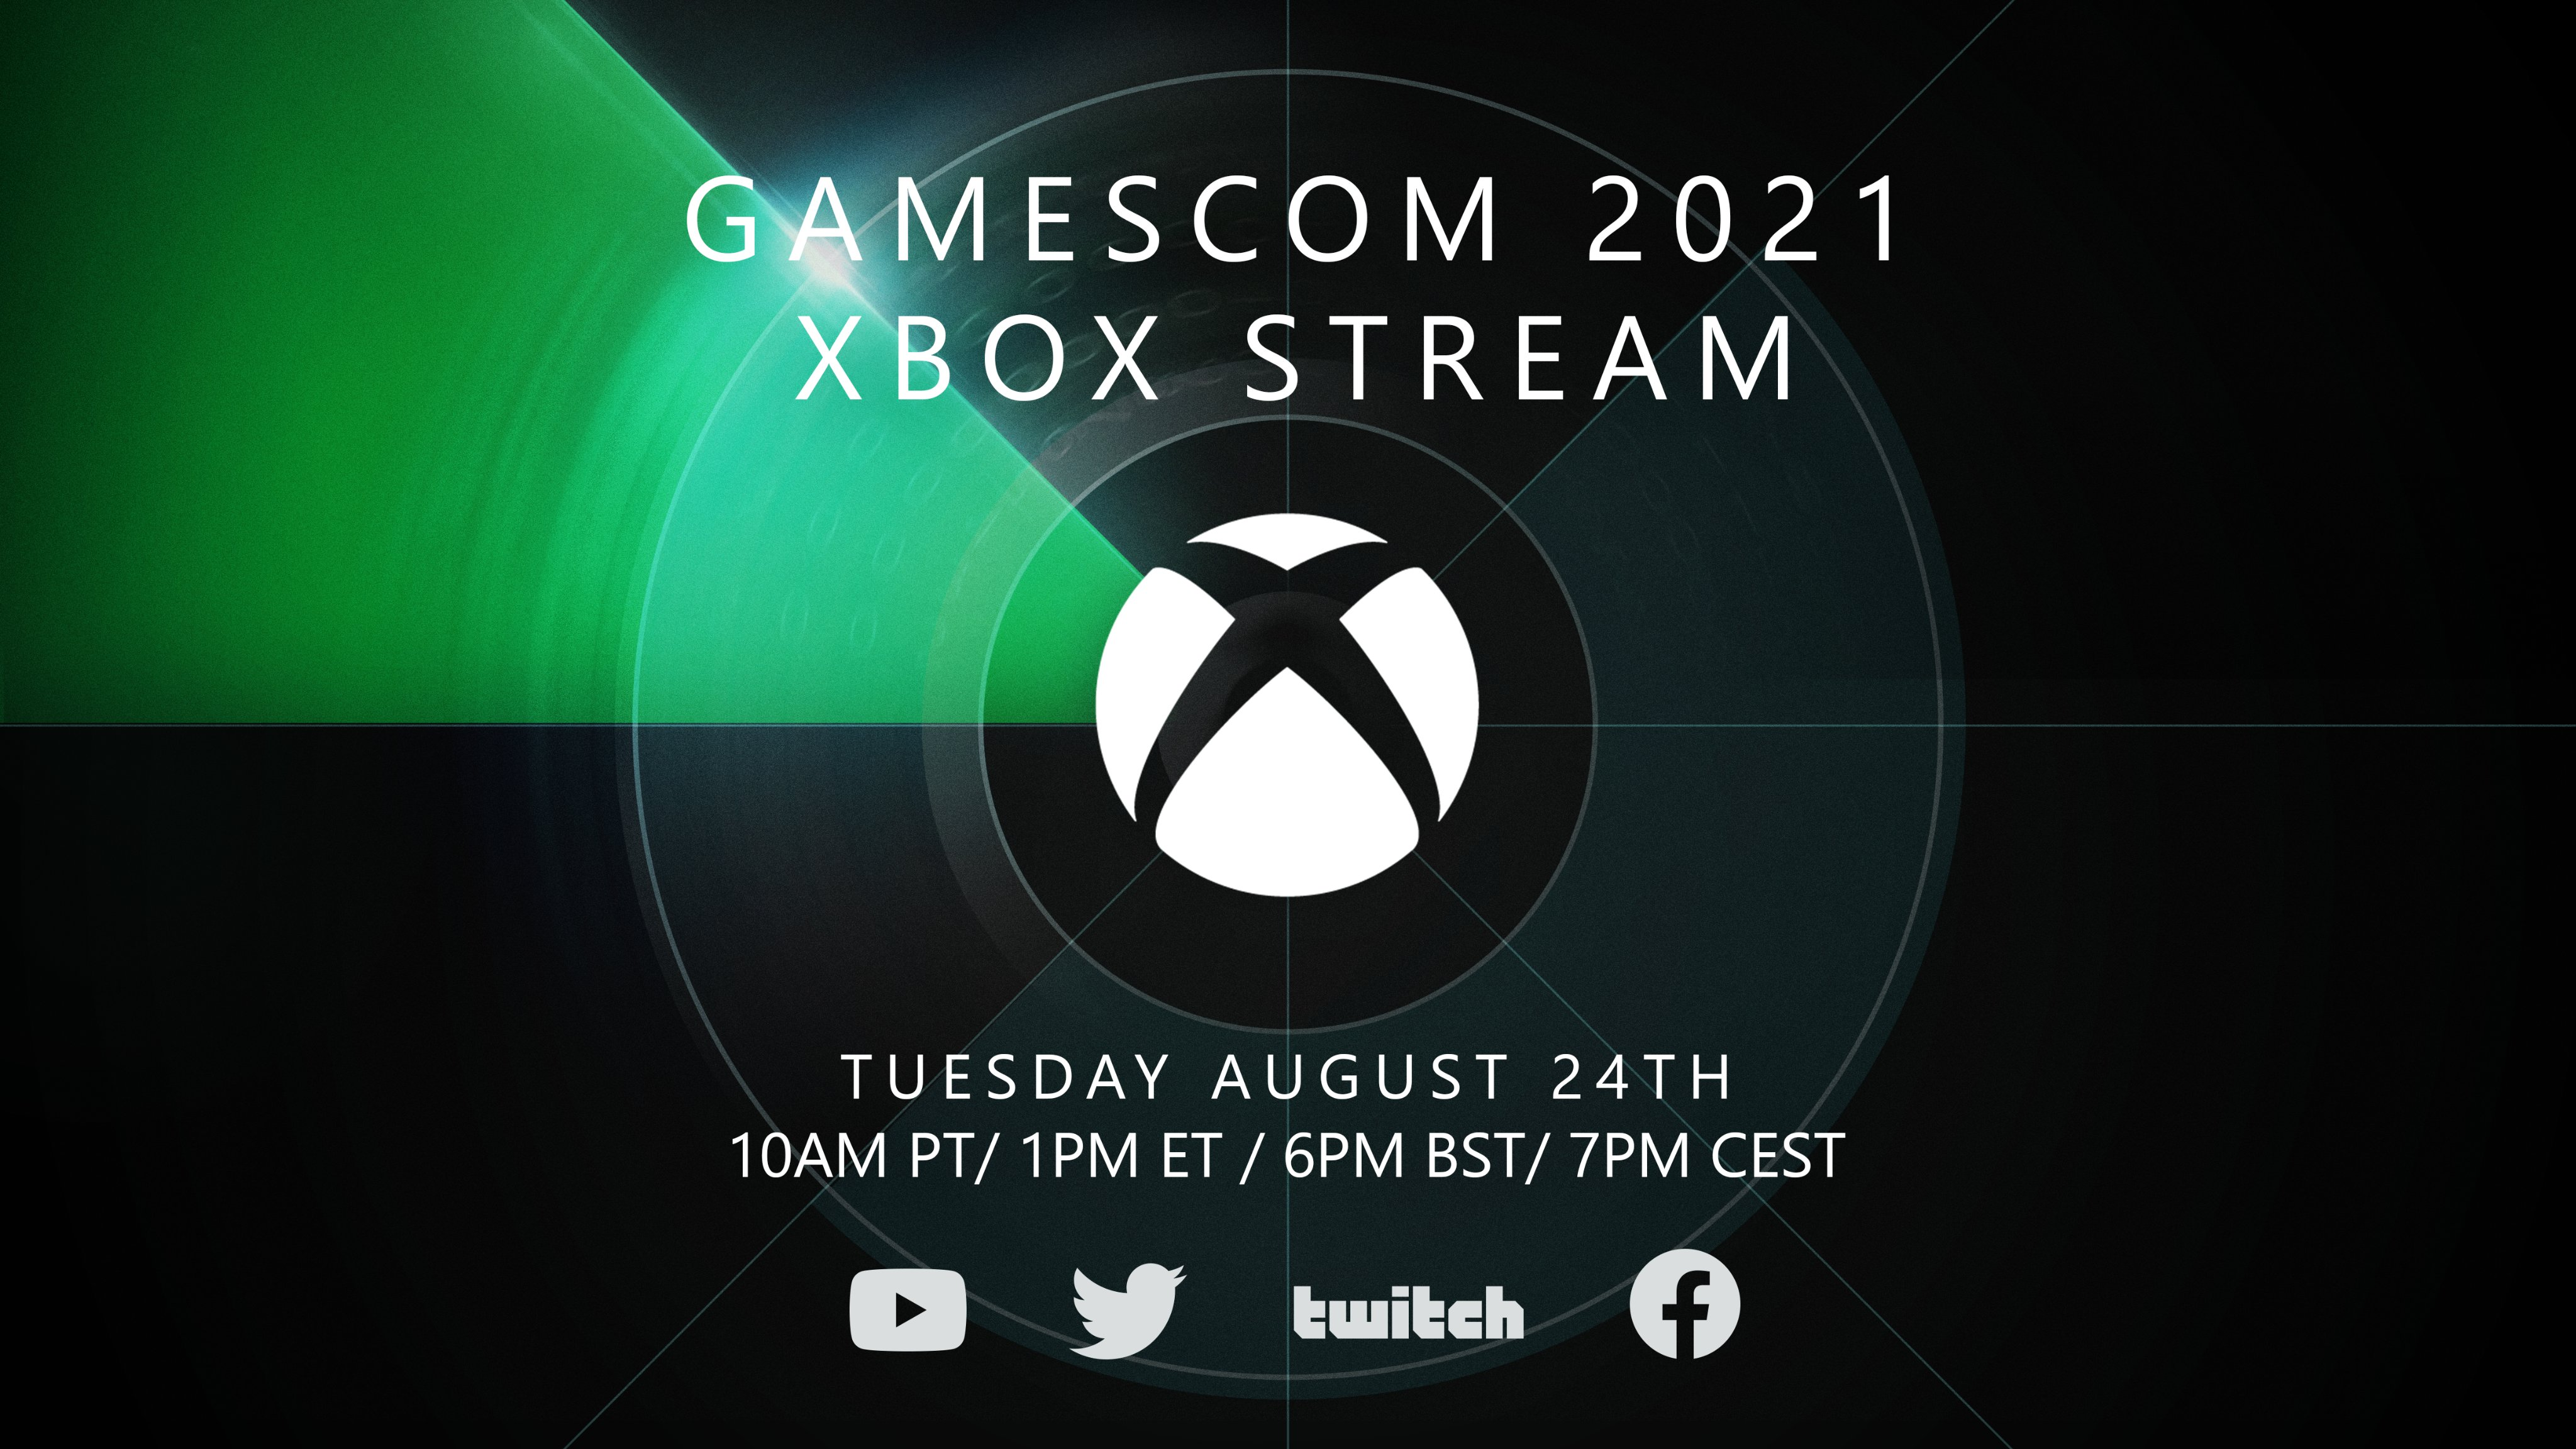 GAMESCOM 2021 XBOX 2021. Tuesday August 24th. 10am PT/1pm ET/6pm BST/7pm CEST. YouTube, Twitter, Twitch, and Facebook logos are shown.